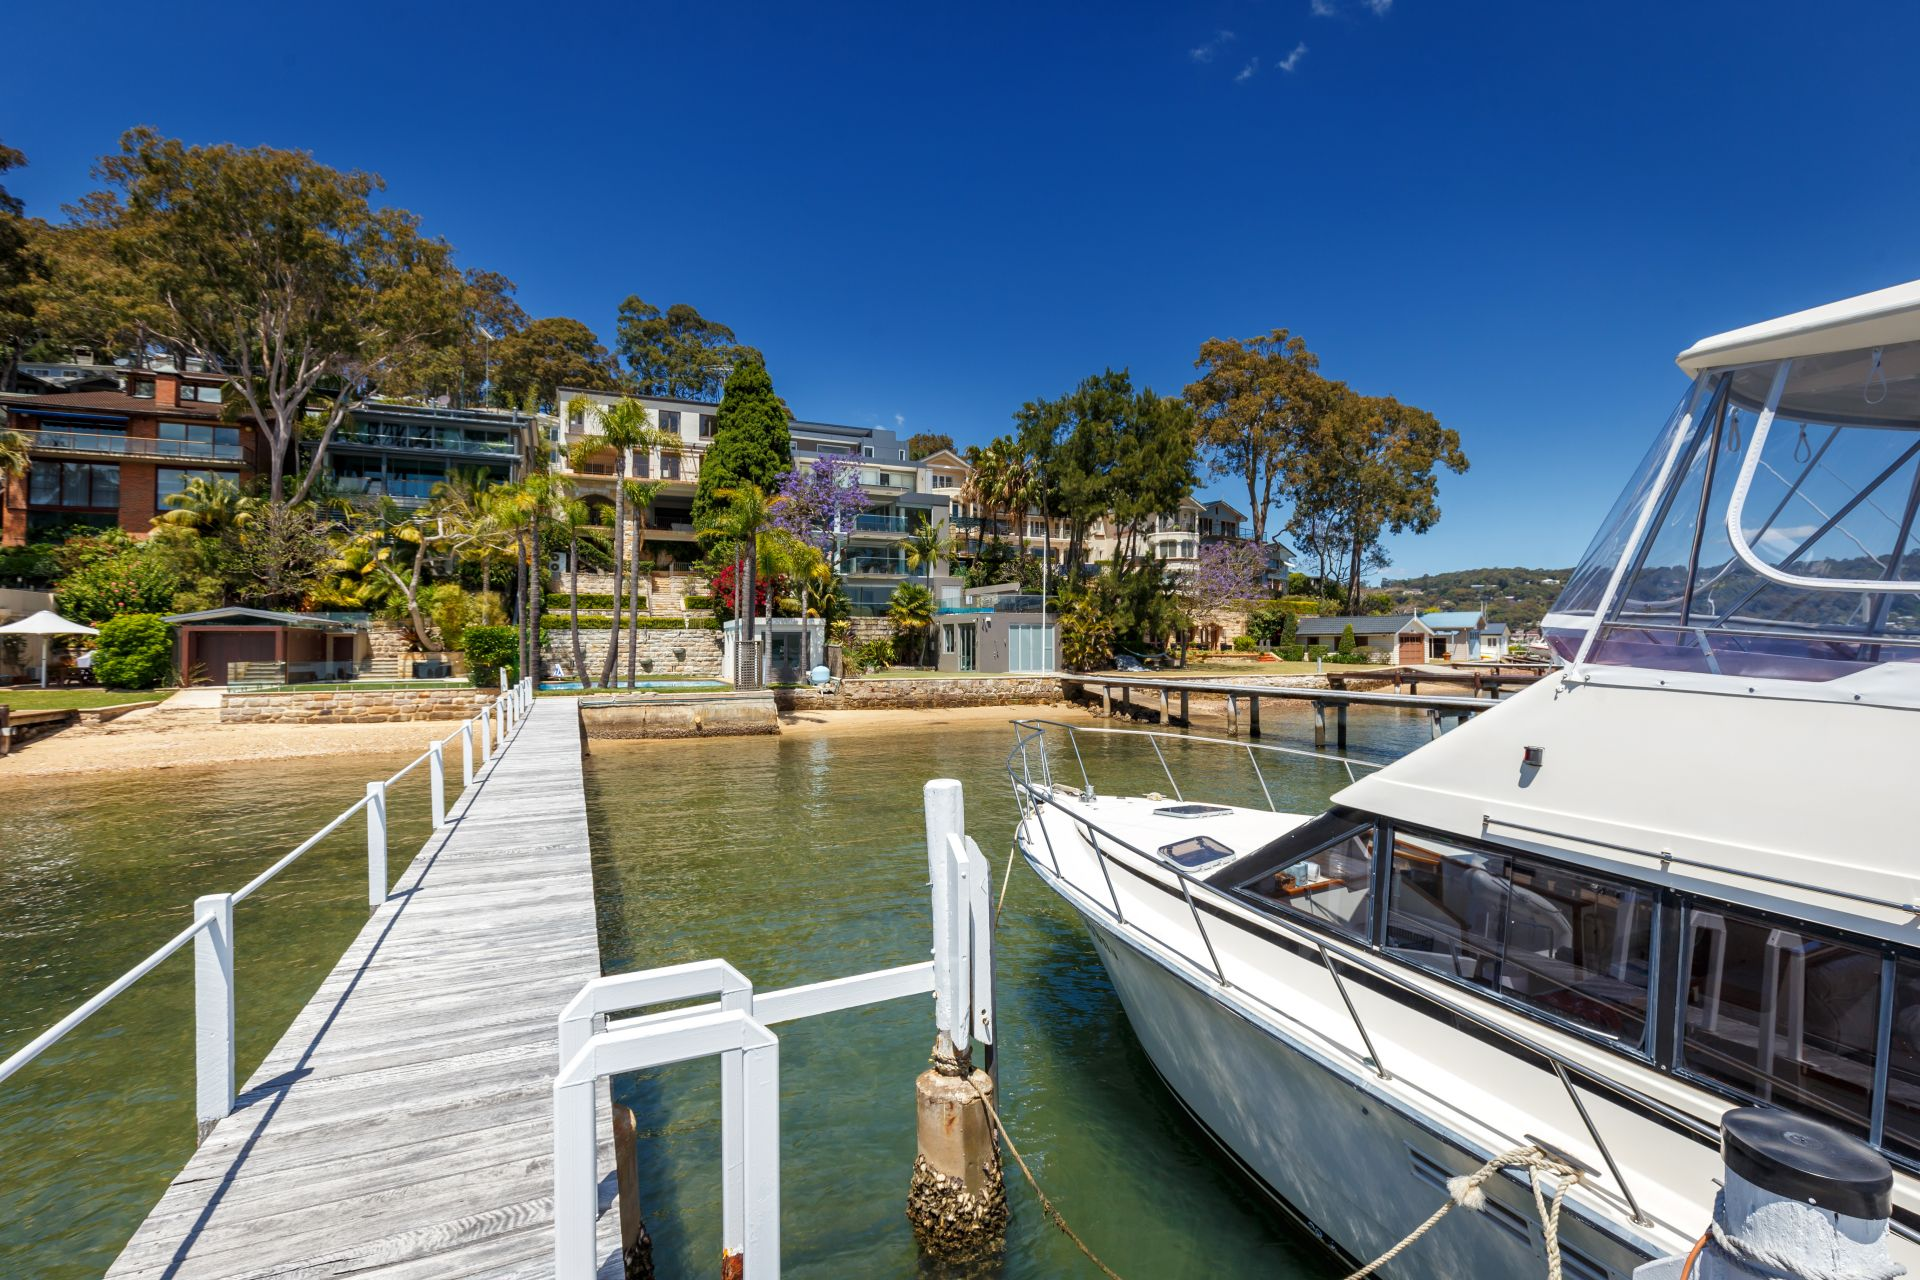 Additional photo for property listing at 'La Dolce Vita' - Mediterranean-inspired waterfront 98 Prince Alfred Parade Newport, New South Wales,2106 Austrália